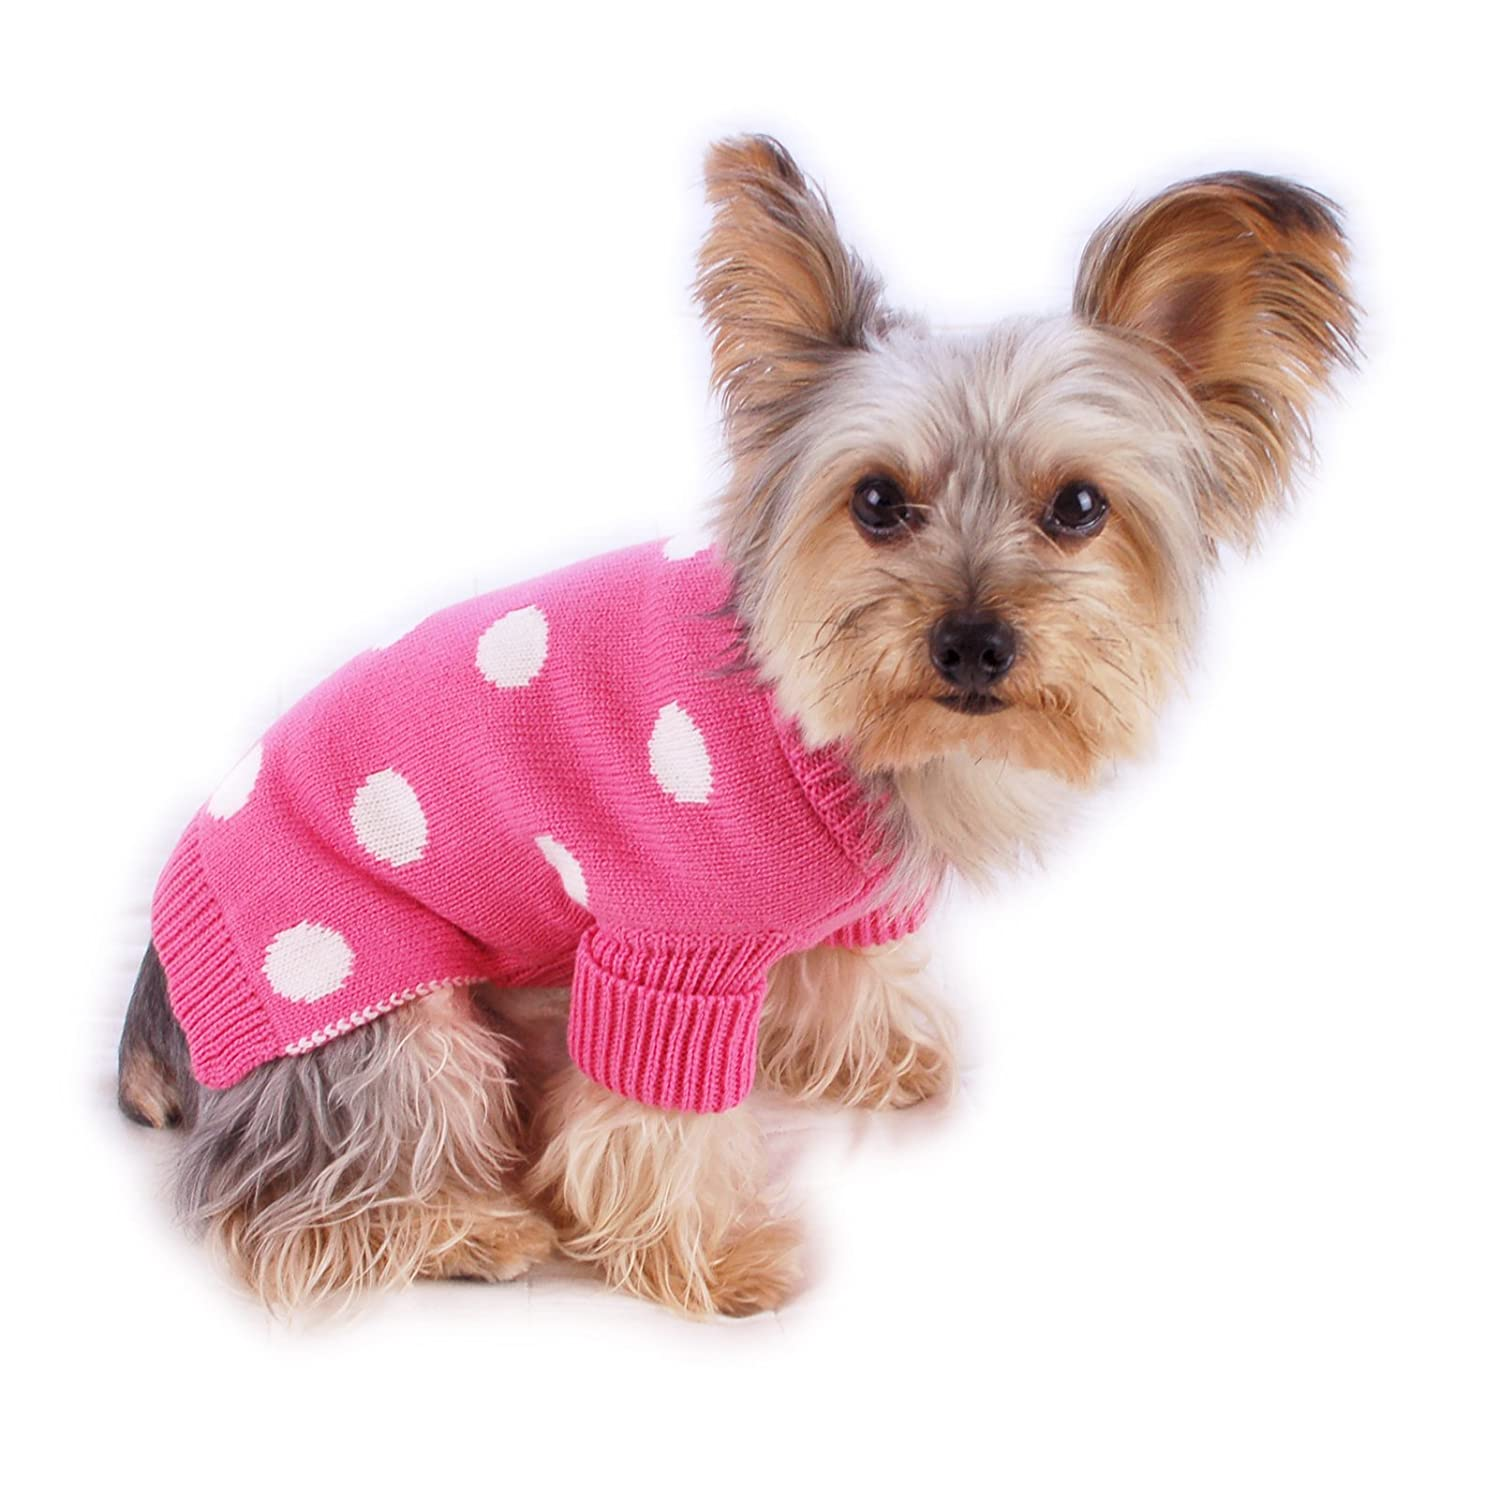 Polka Dot Dog Sweater